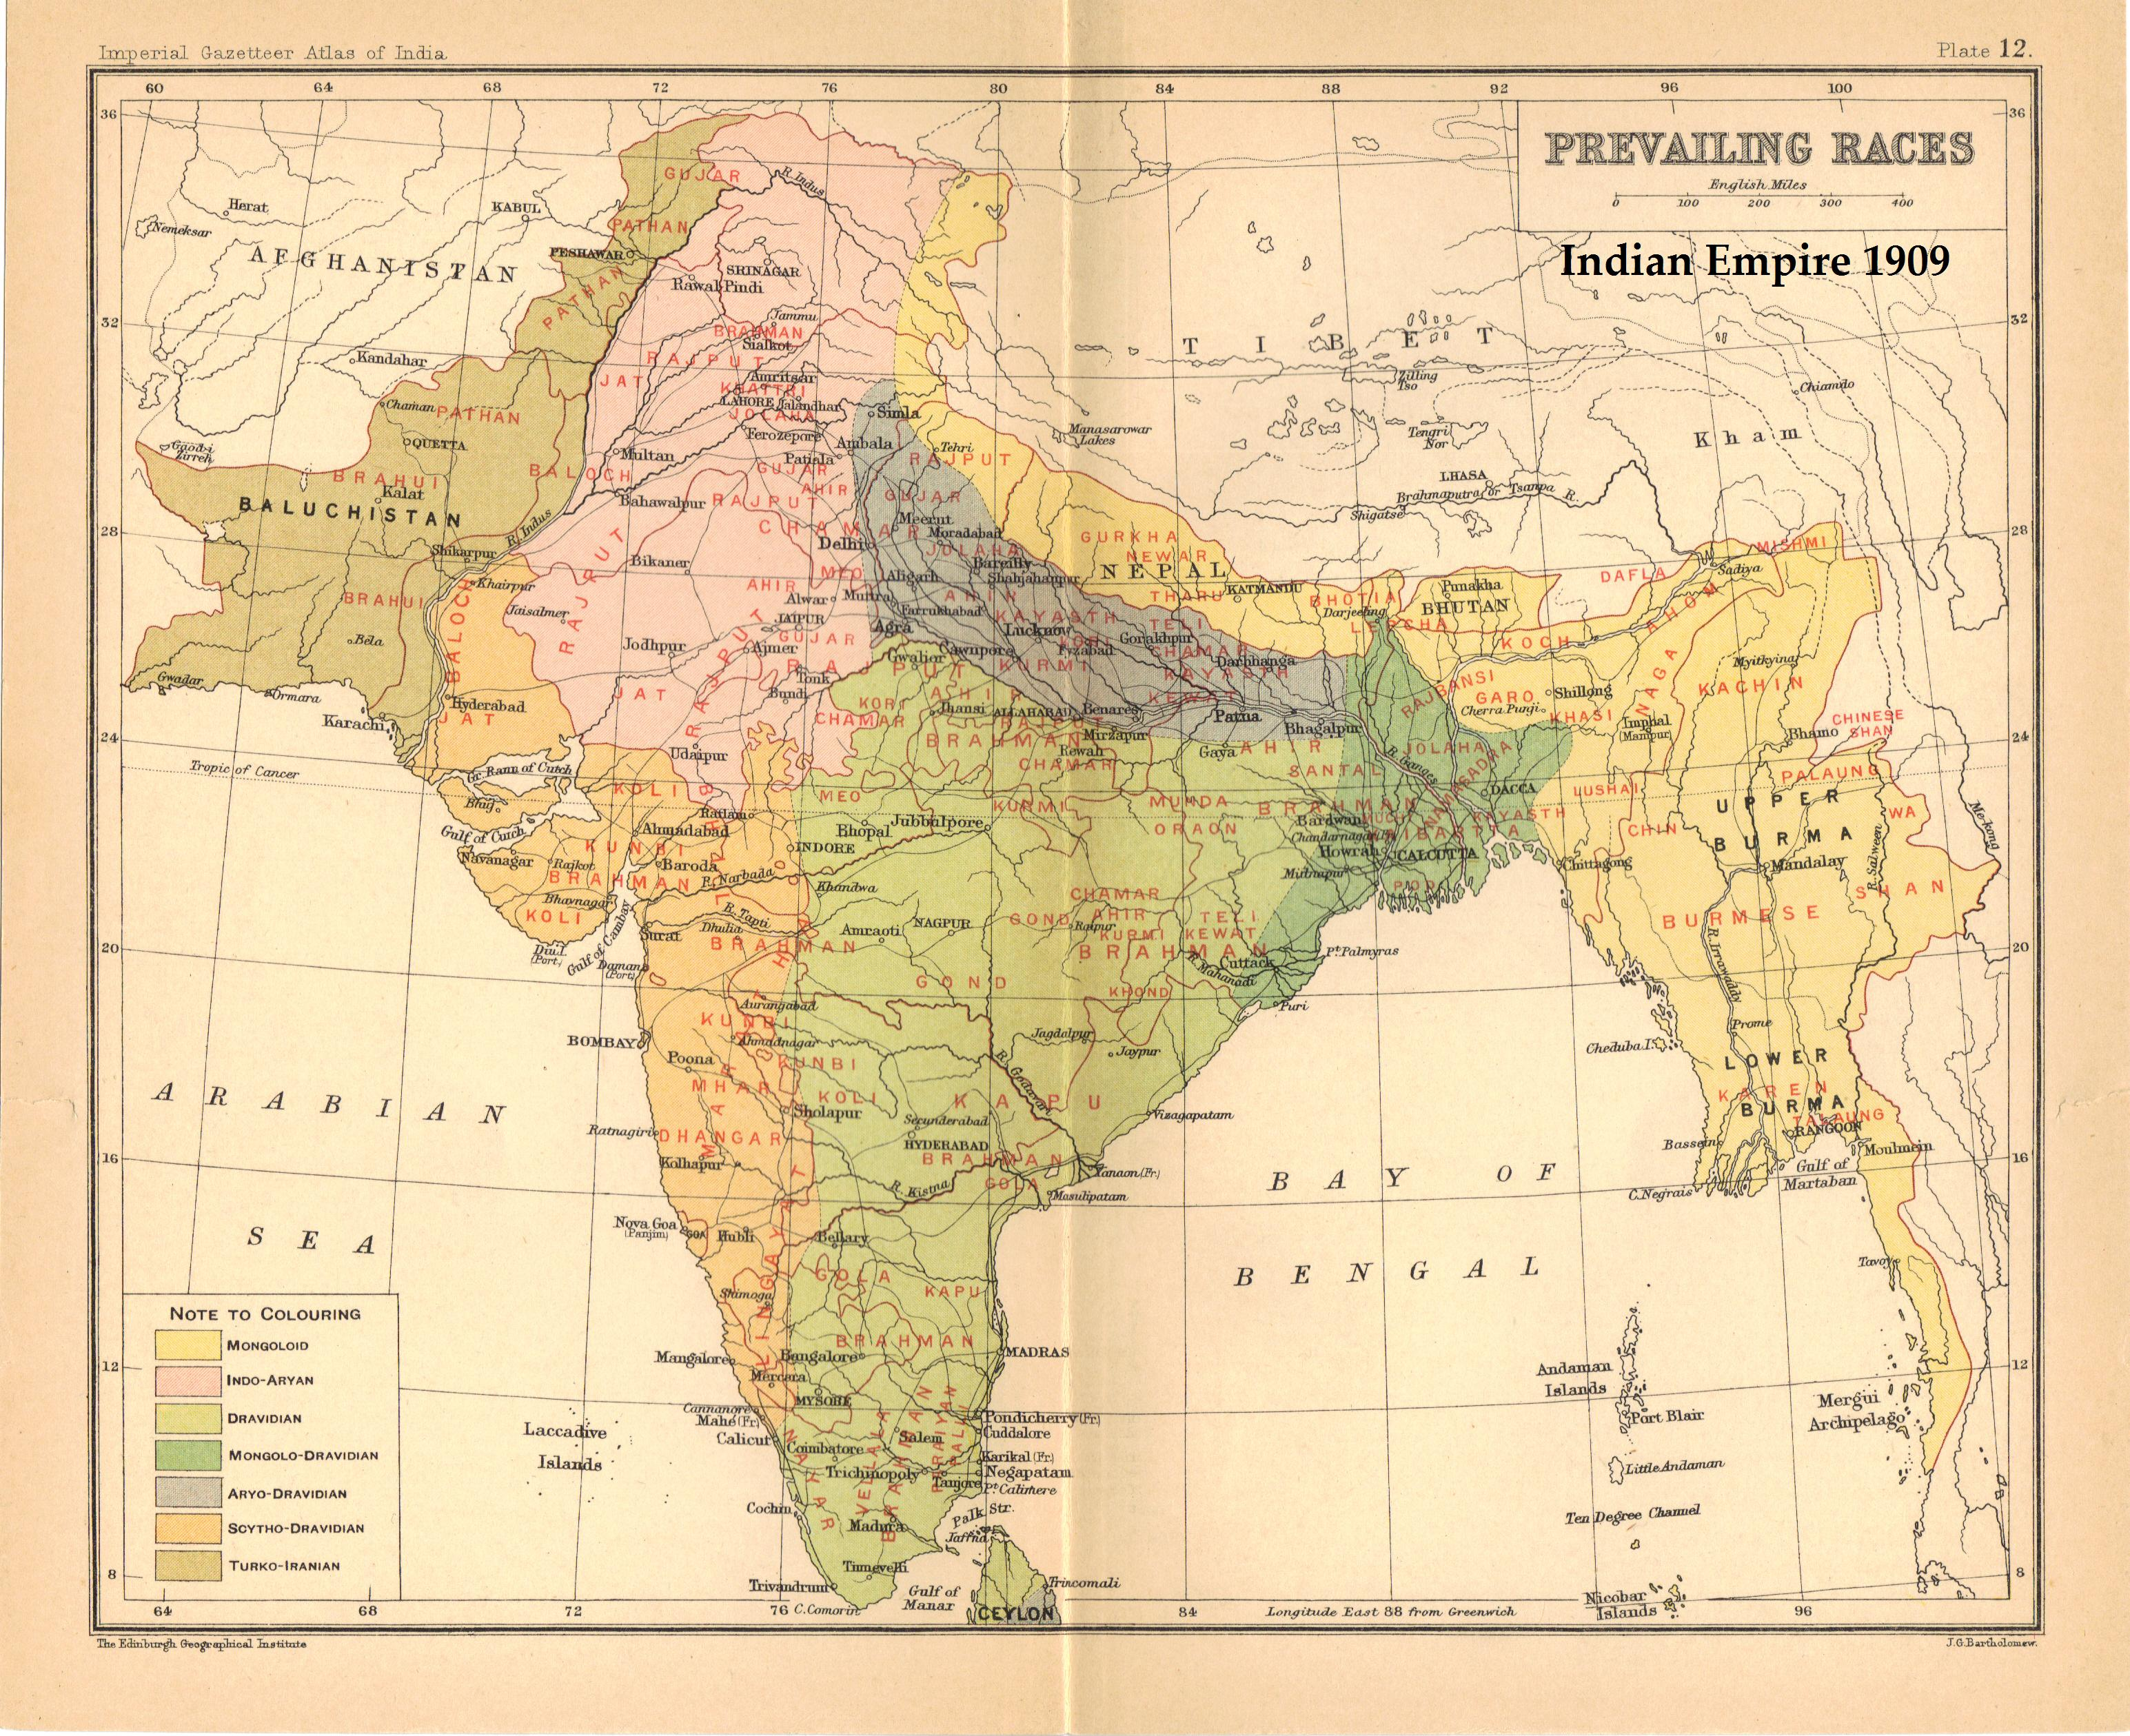 FileIndiaPrevailingRacesJPG Wikipedia - Map of united provinces india